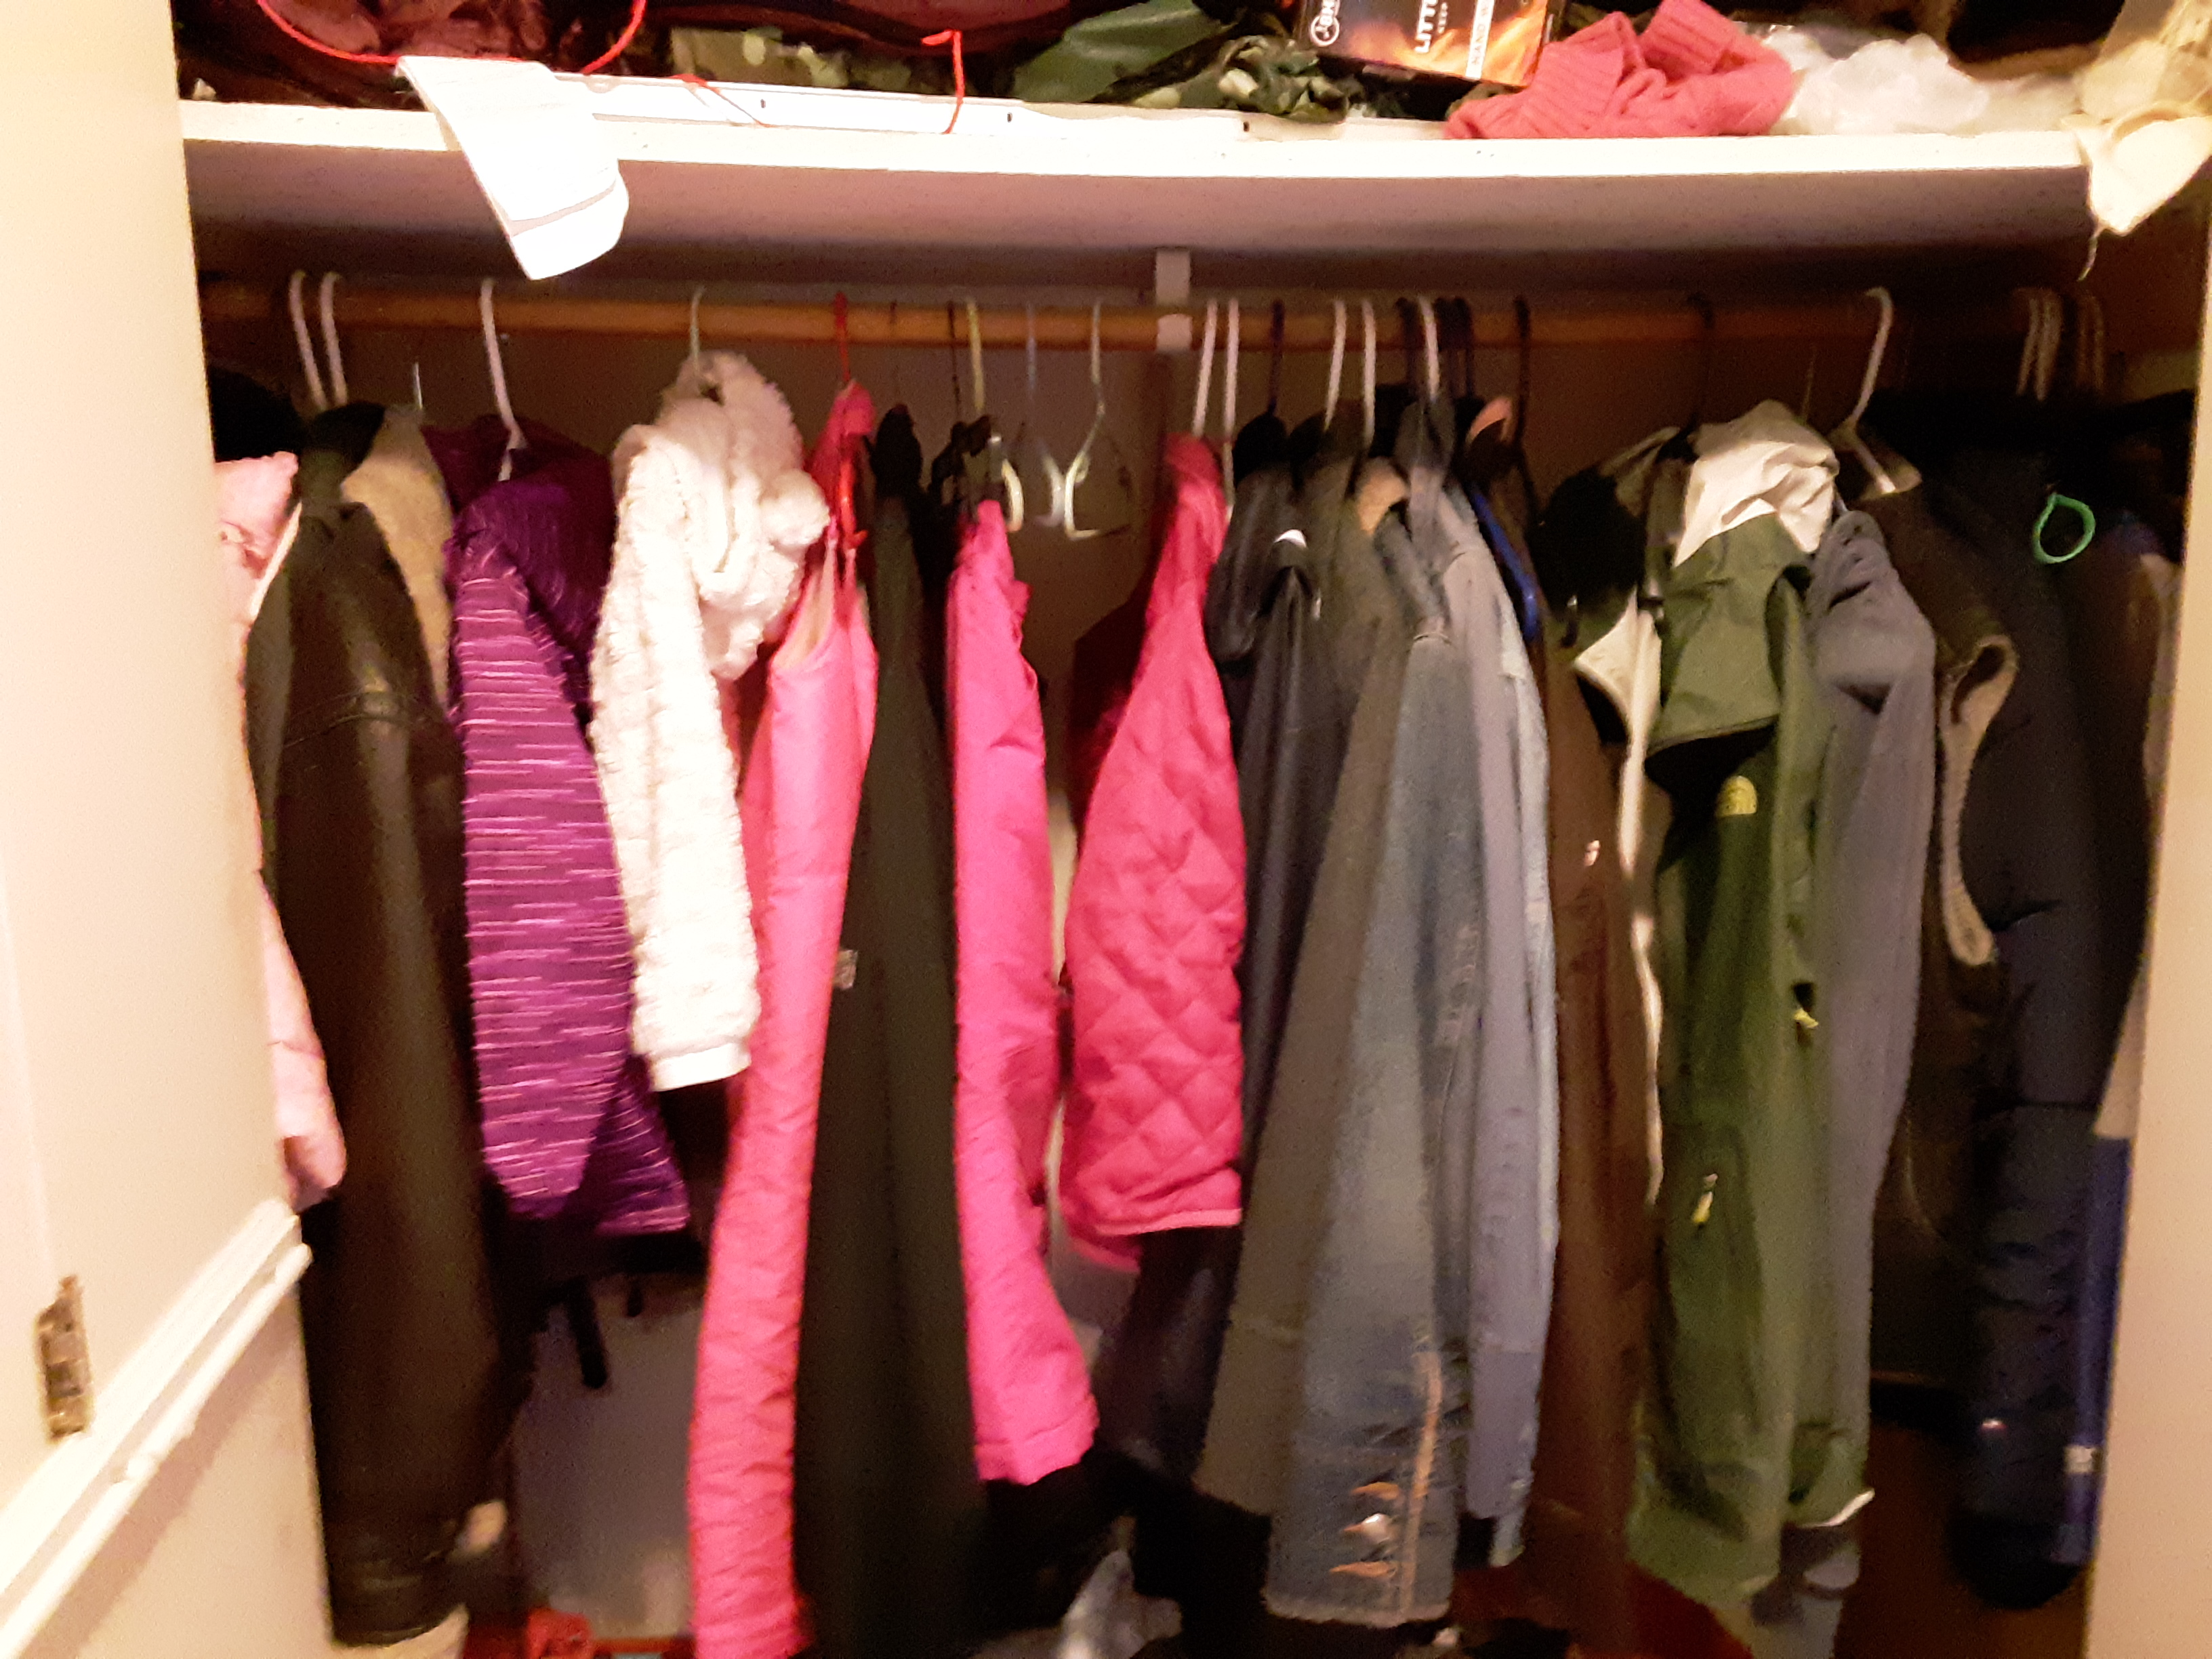 Jackets and coats in disarray